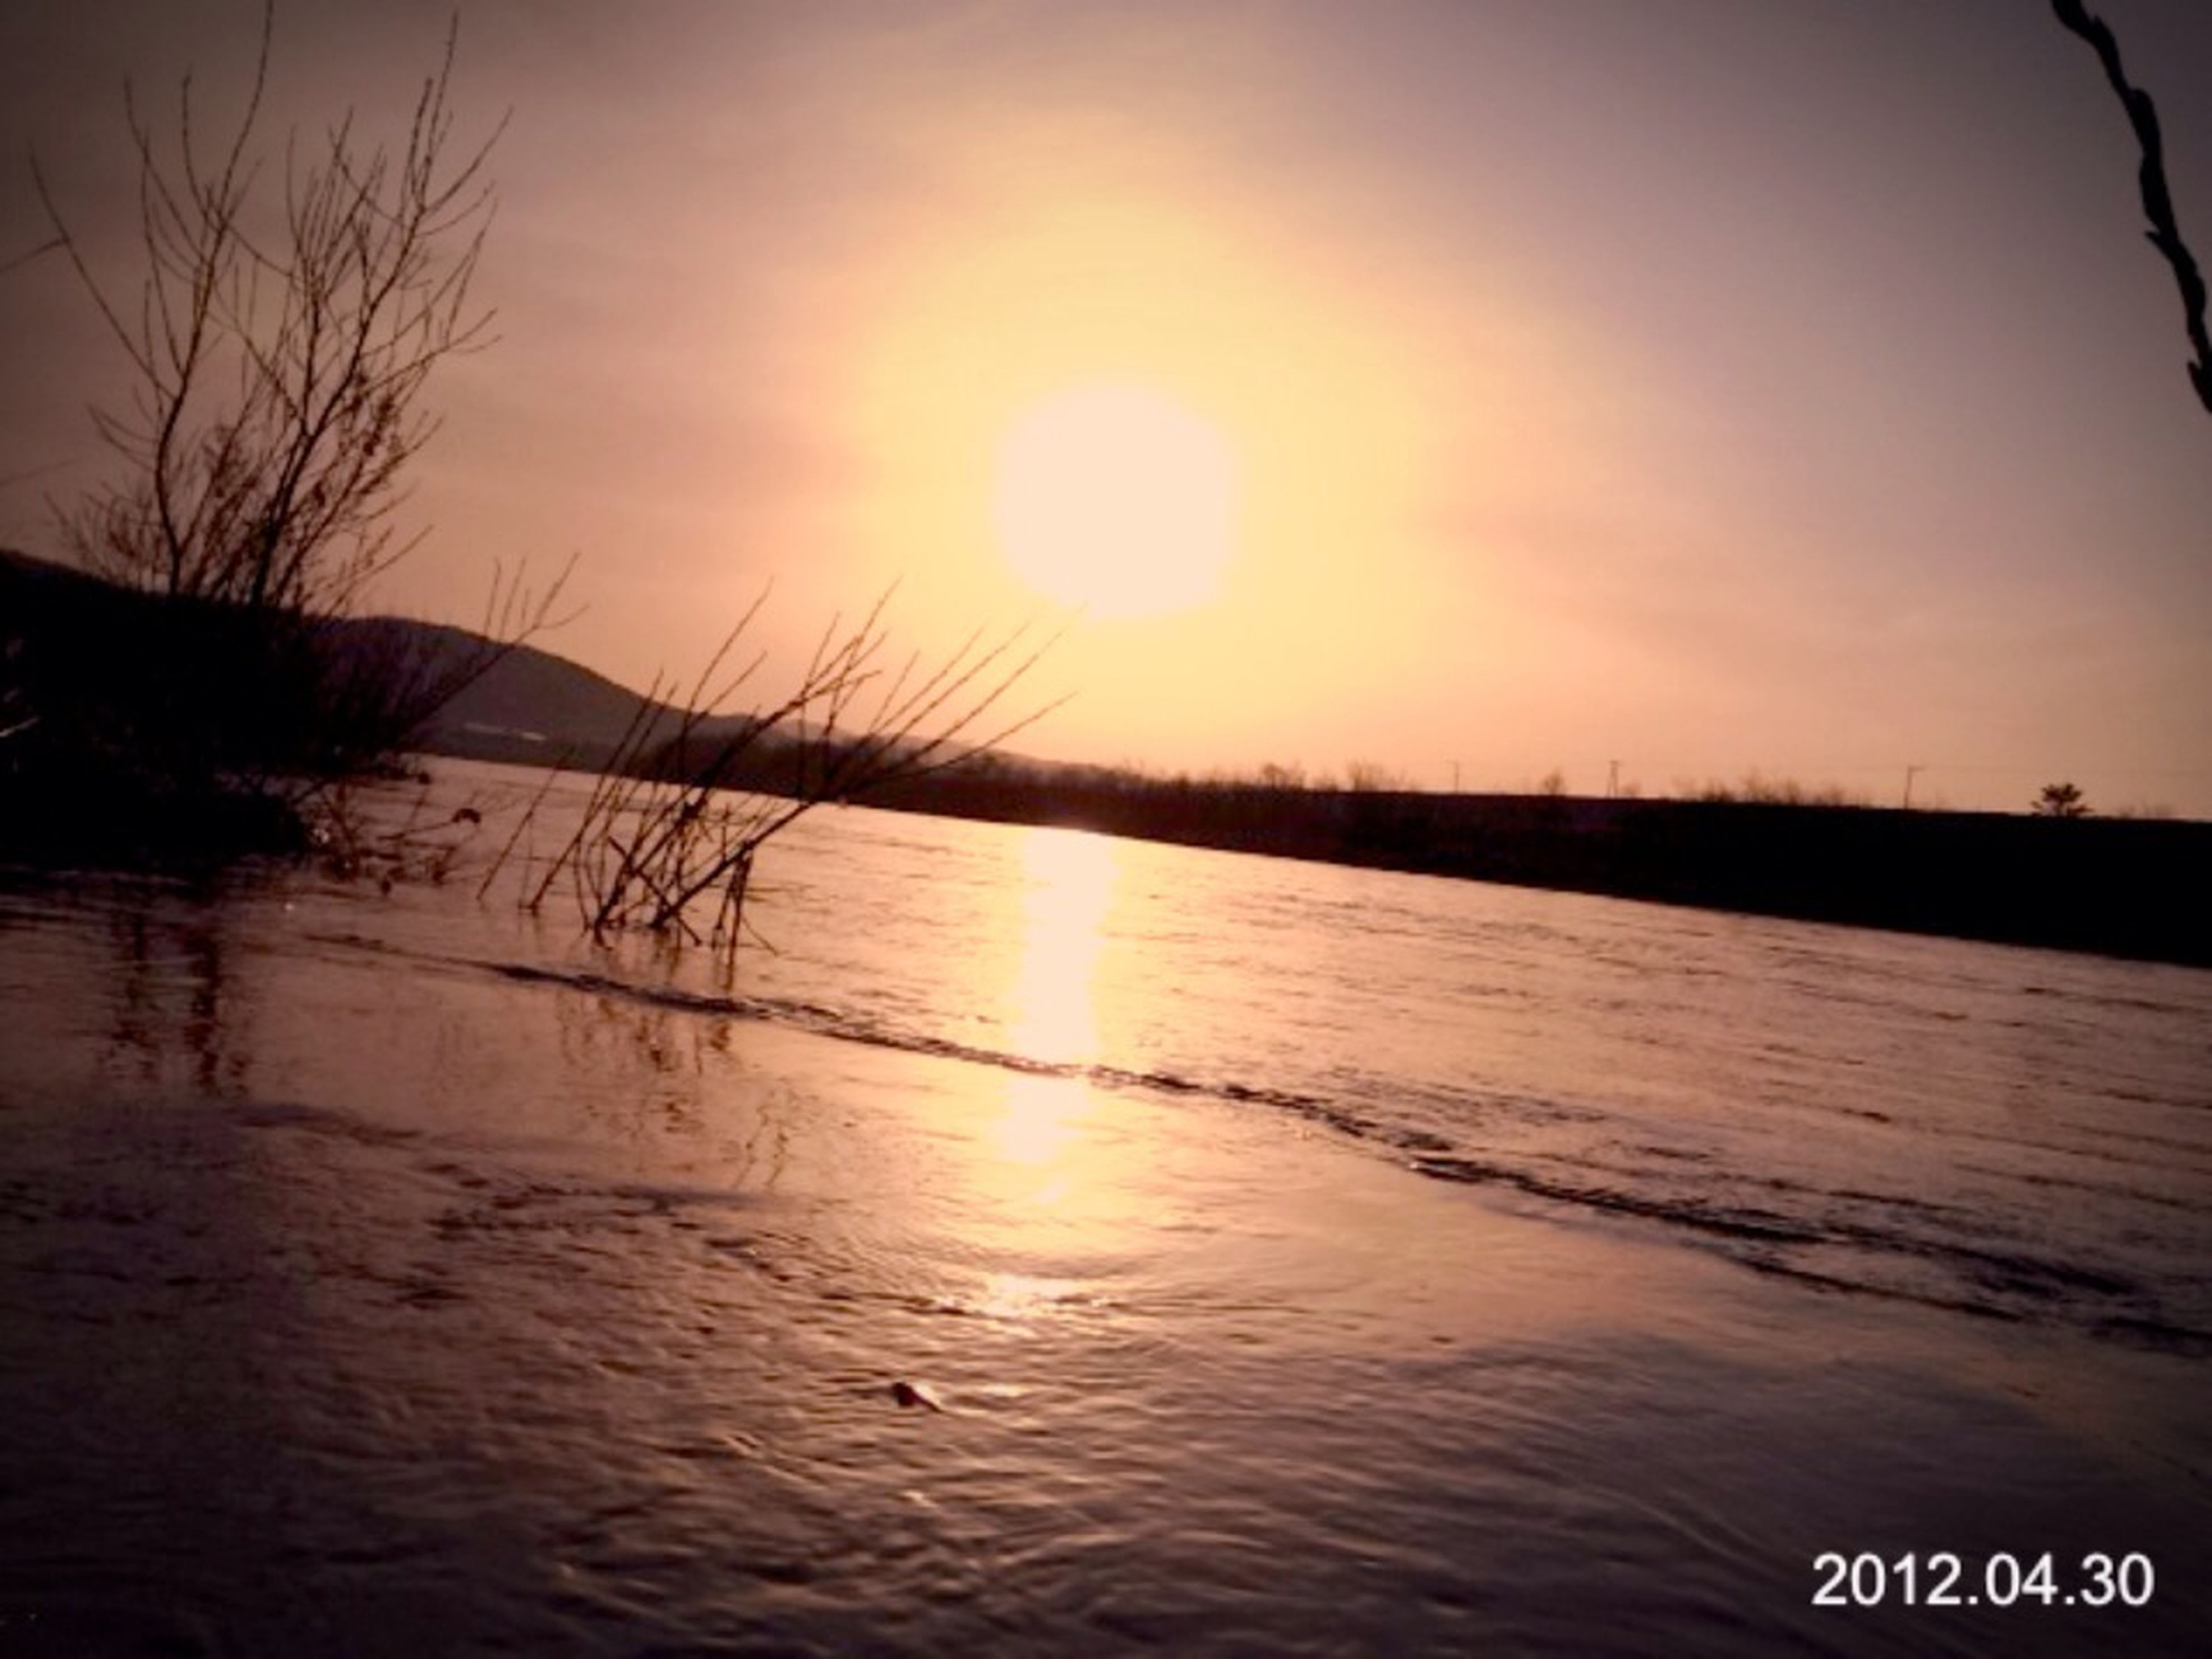 water, sunset, tranquil scene, tranquility, sun, scenics, reflection, beauty in nature, lake, nature, sky, idyllic, silhouette, sunlight, river, rippled, non-urban scene, outdoors, calm, no people